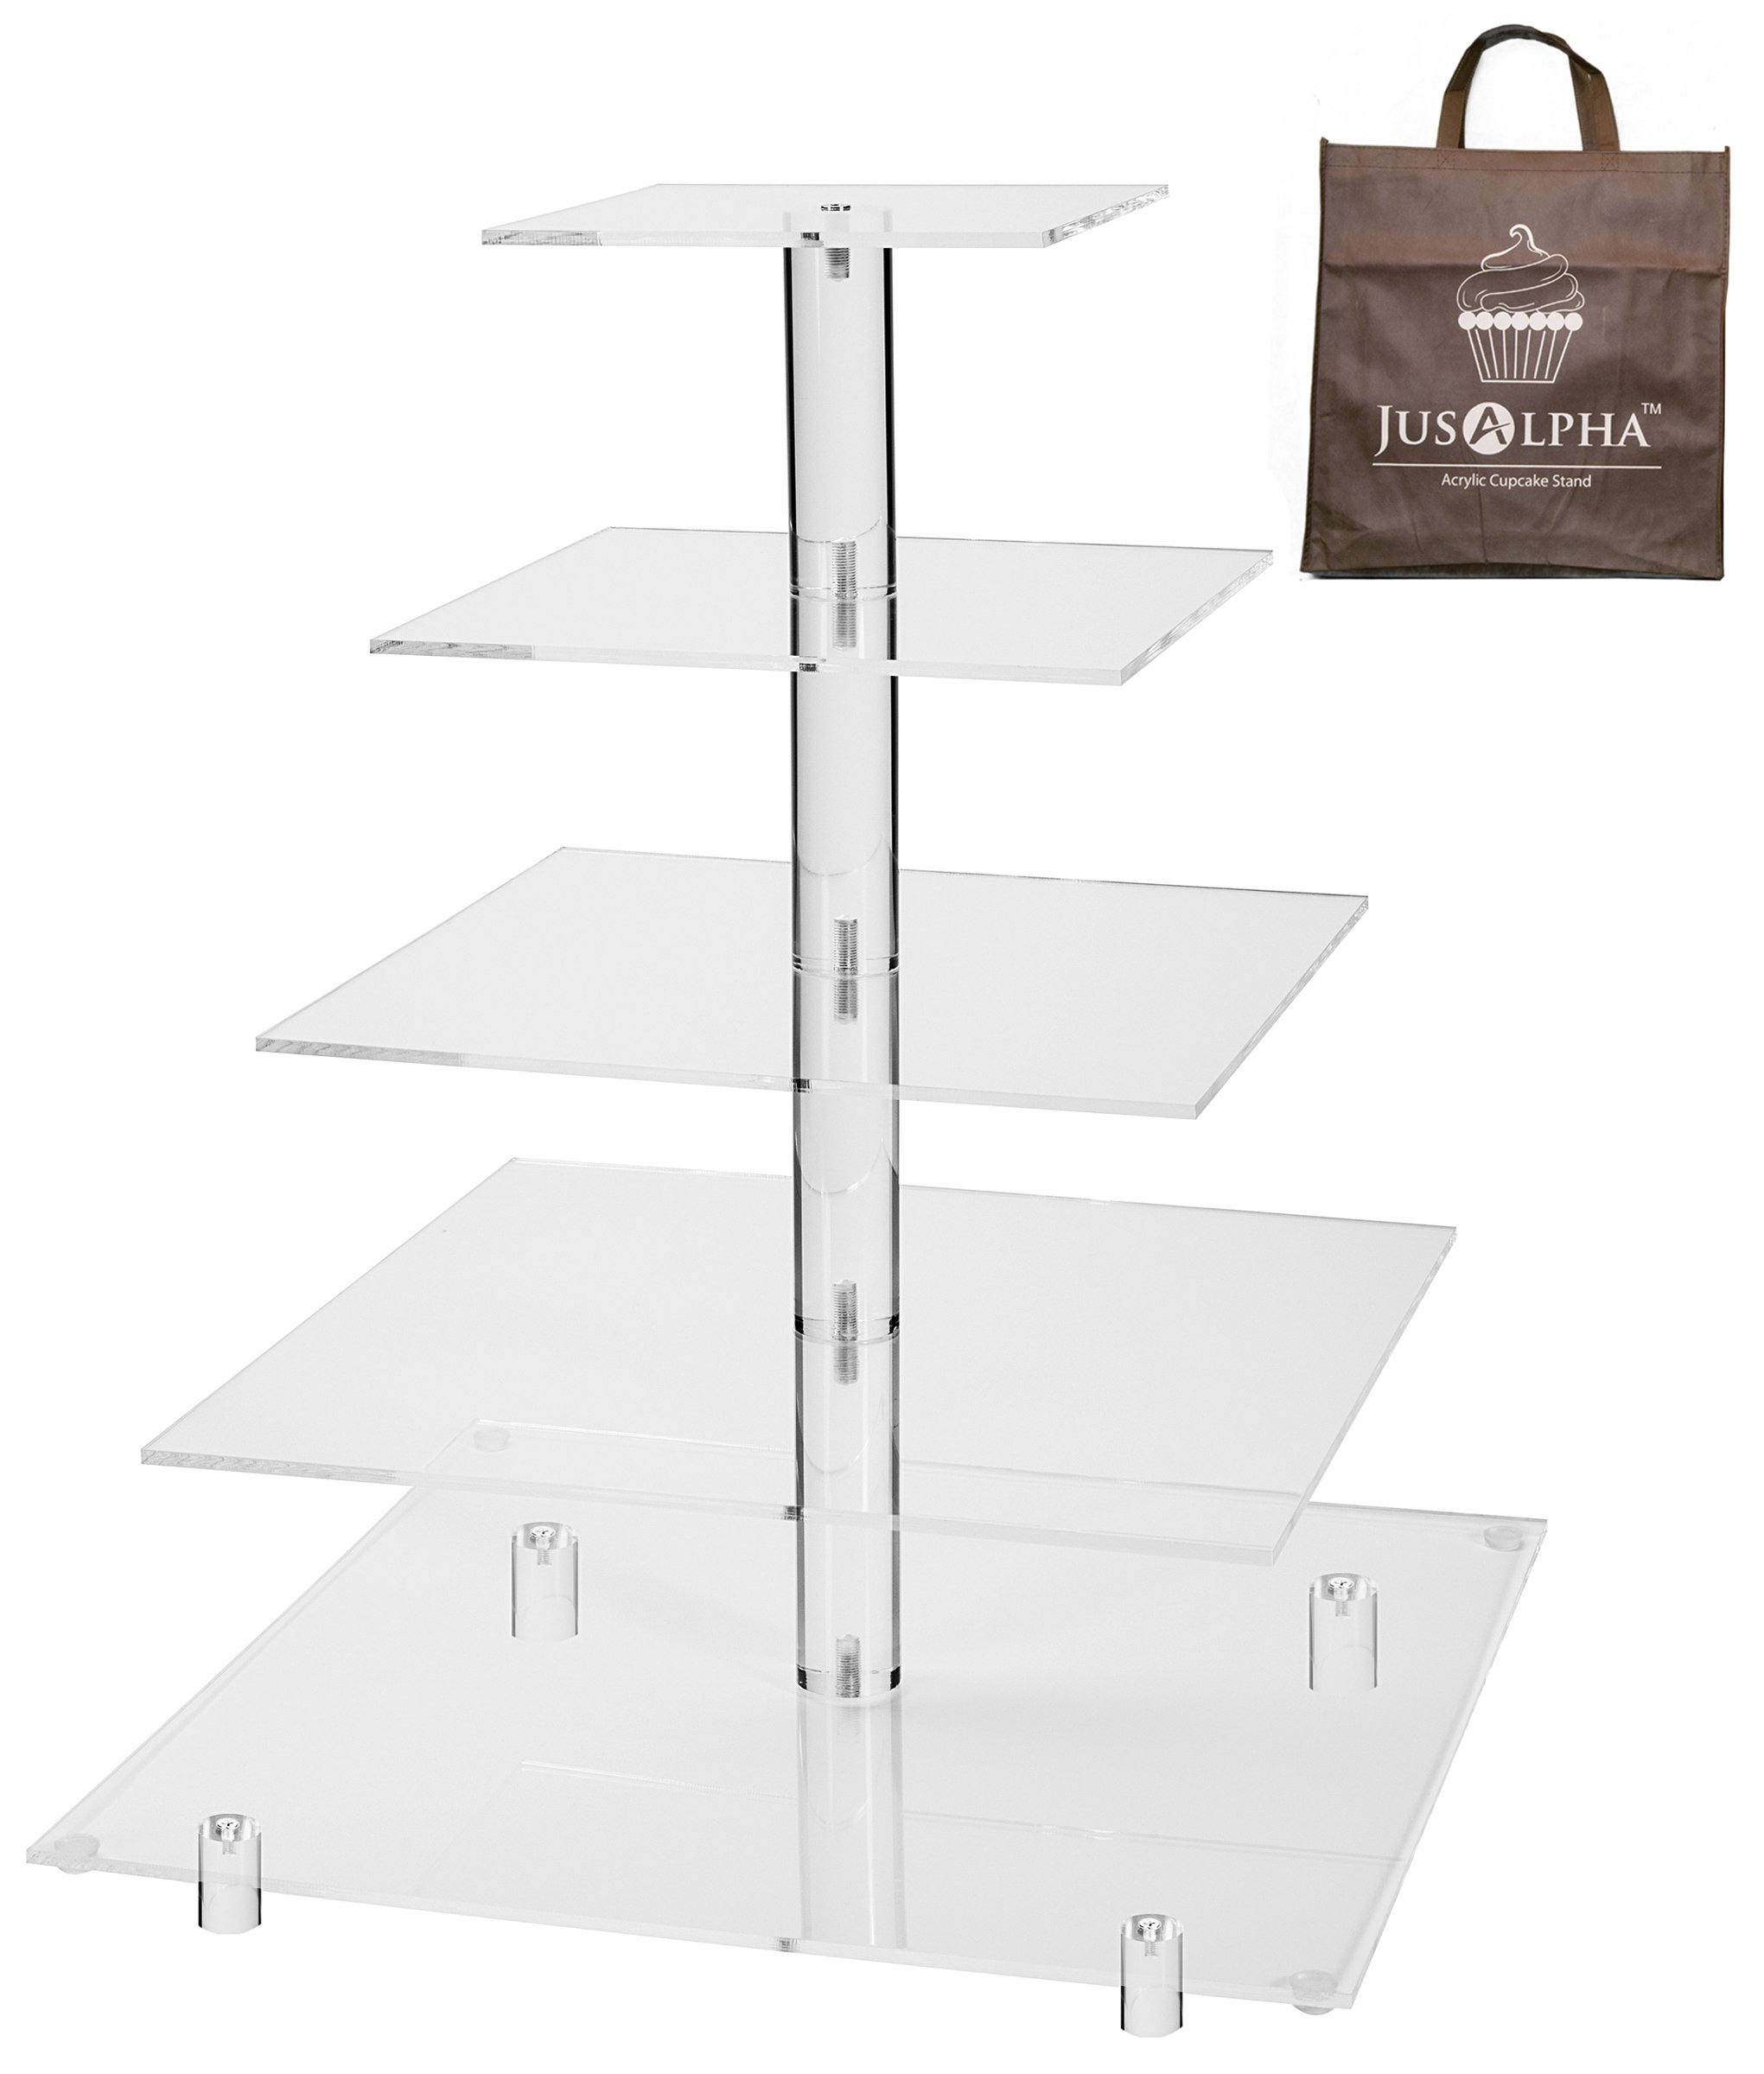 Jusalpha 5 Tier Acrylic Square Wedding Cake Stand/Cupcake Stand Tower/Dessert Stand/Pastry Serving Platter/Food Display Stand (5SF)